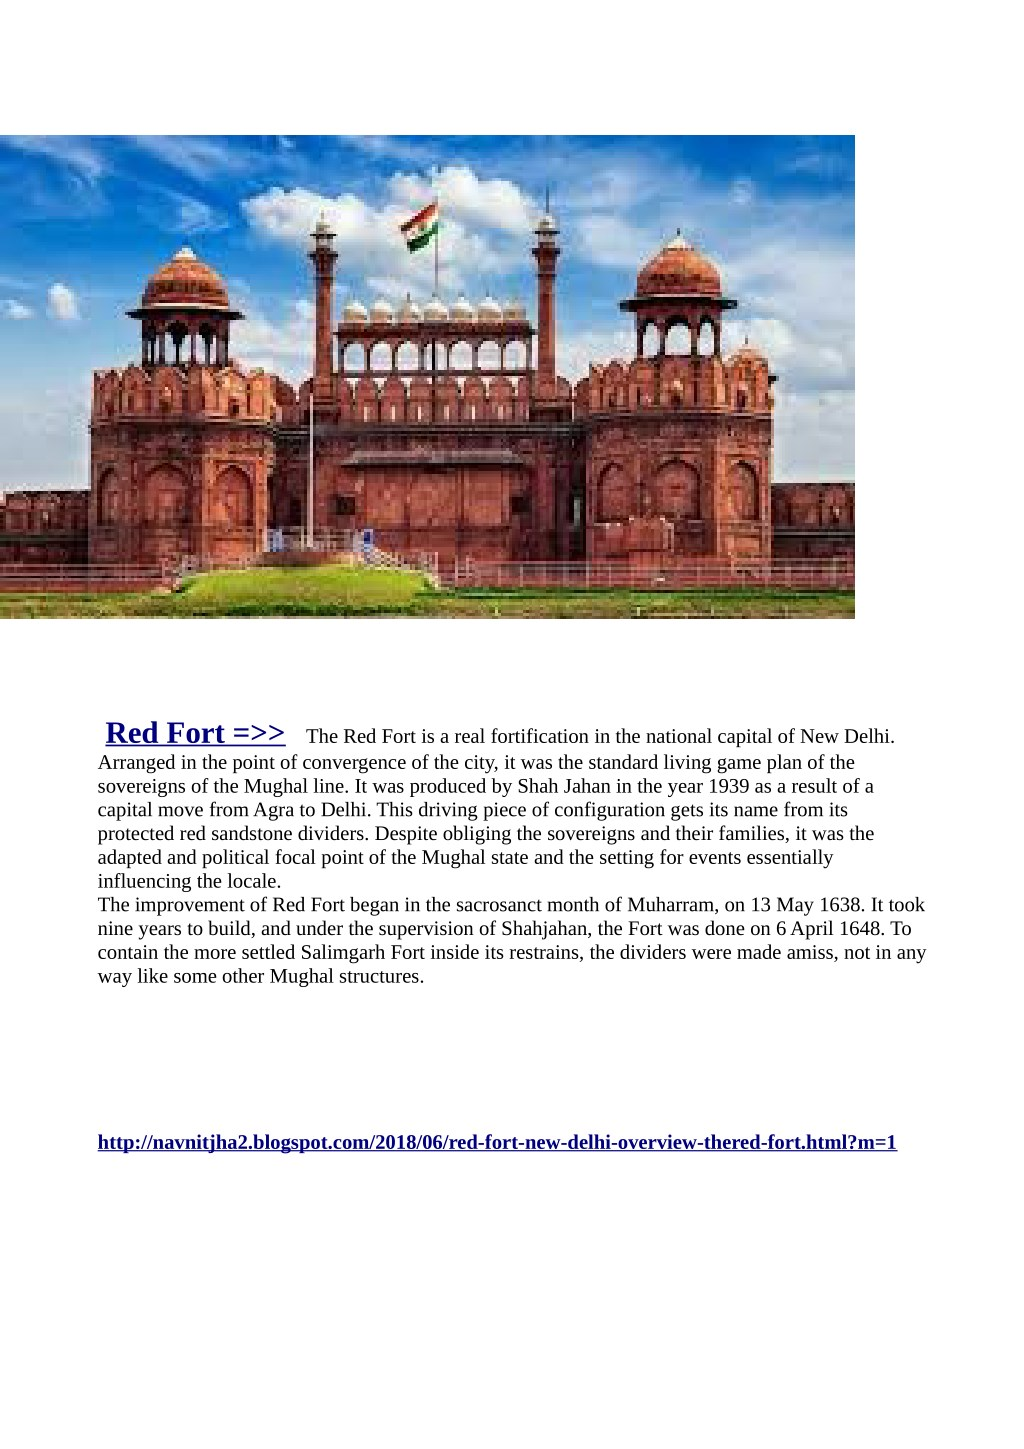 Top red fort powerpoint templates, backgrounds, slides and ppt themes.